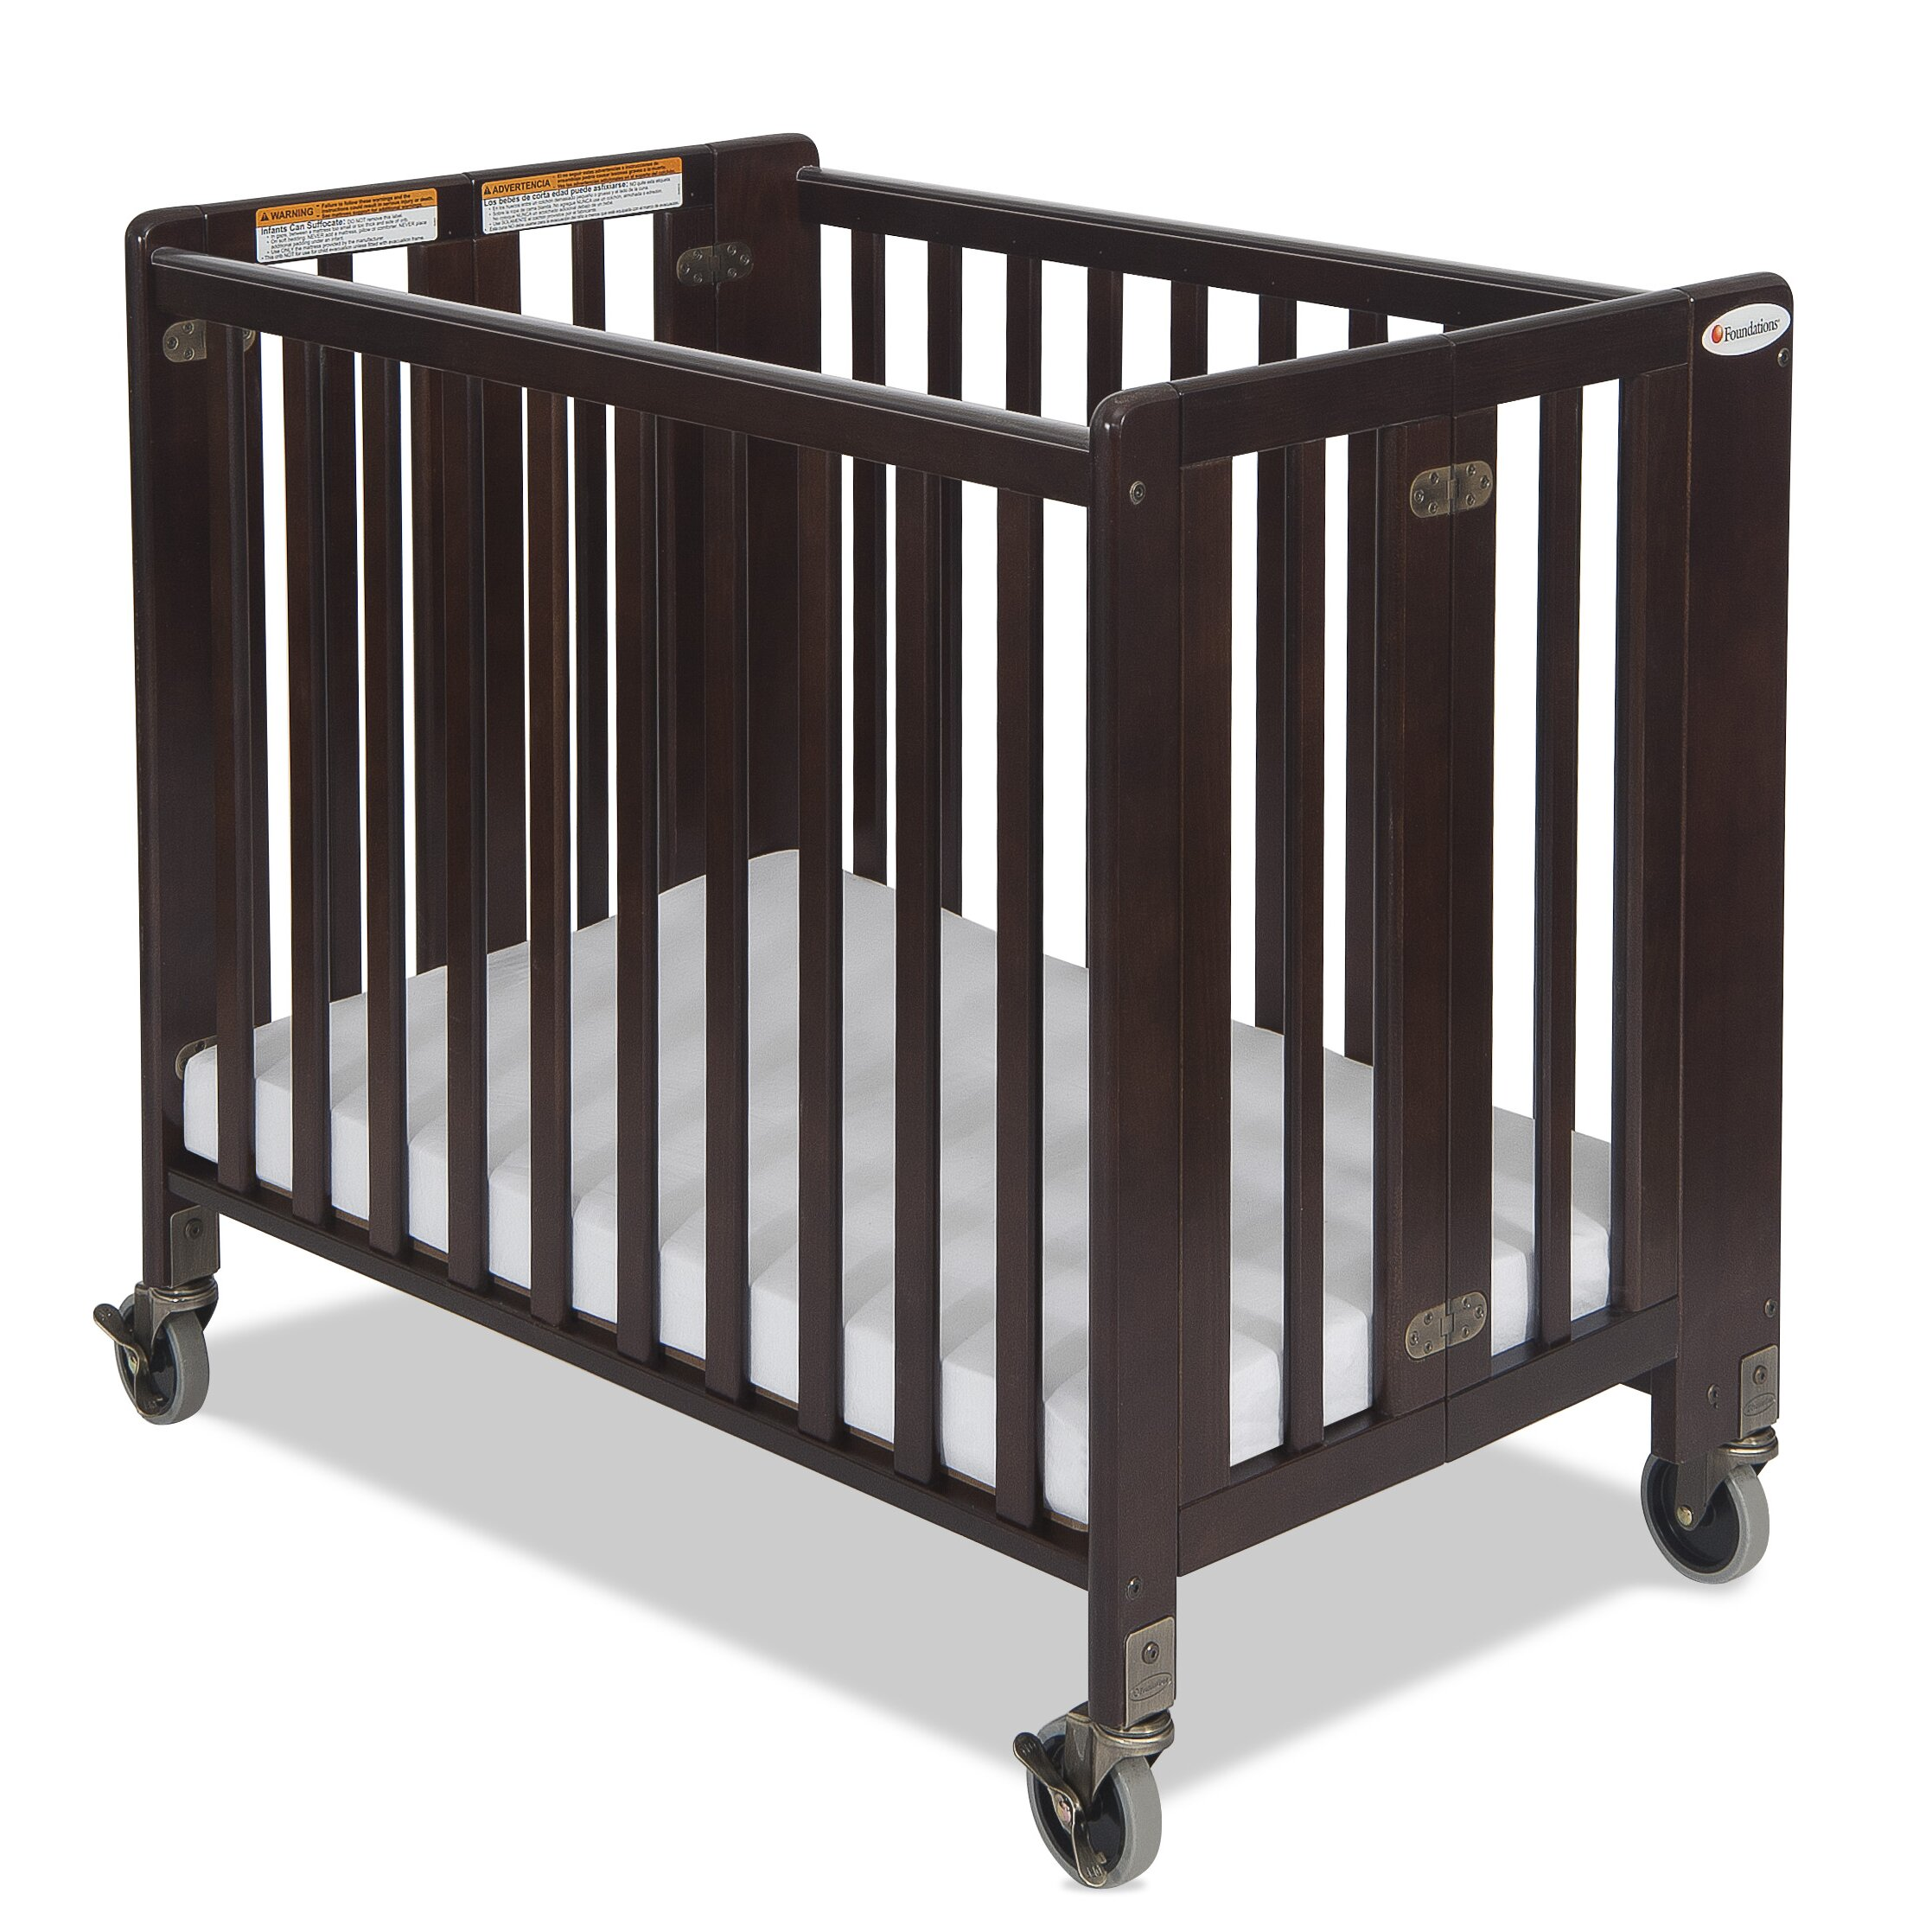 Ellery round crib for sale - Hideaway Storable Wood Convertible Crib With Mattress